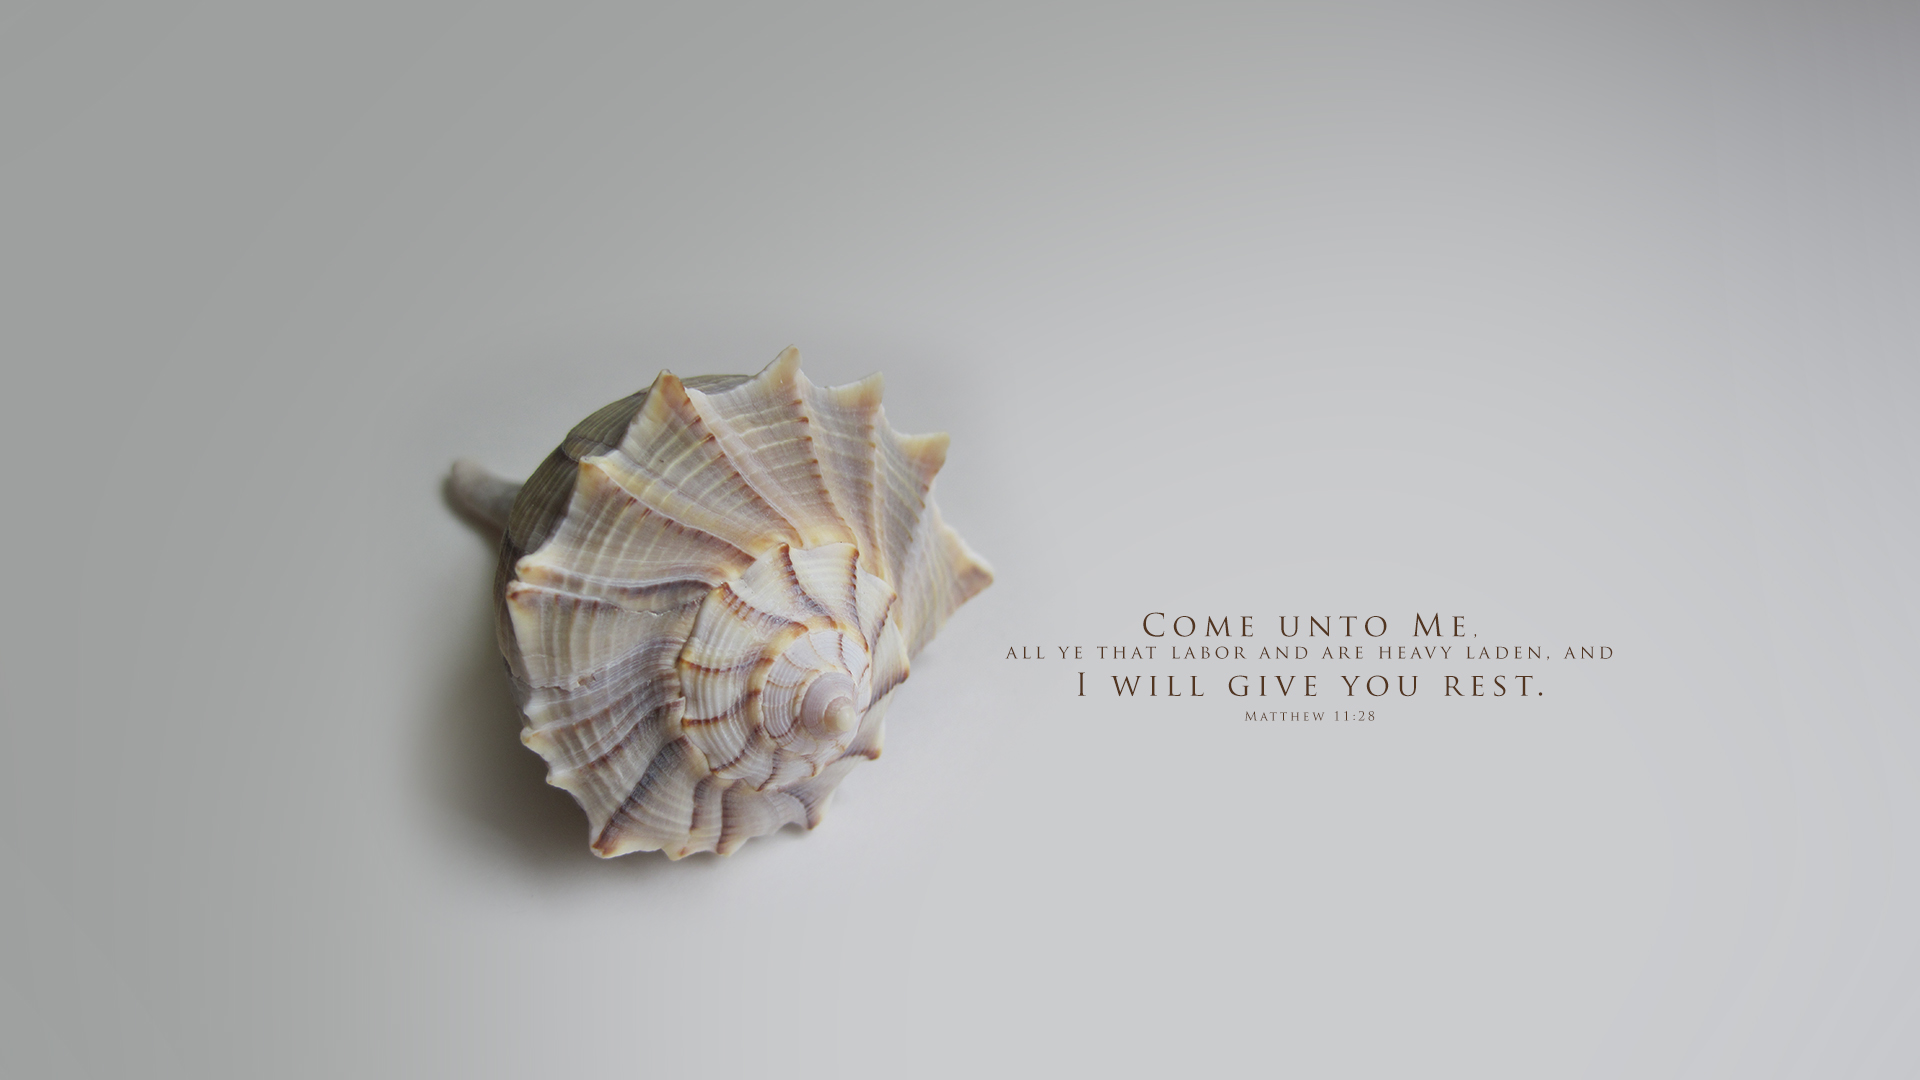 Seashell 1–Matthew 11:28–Wallpaper